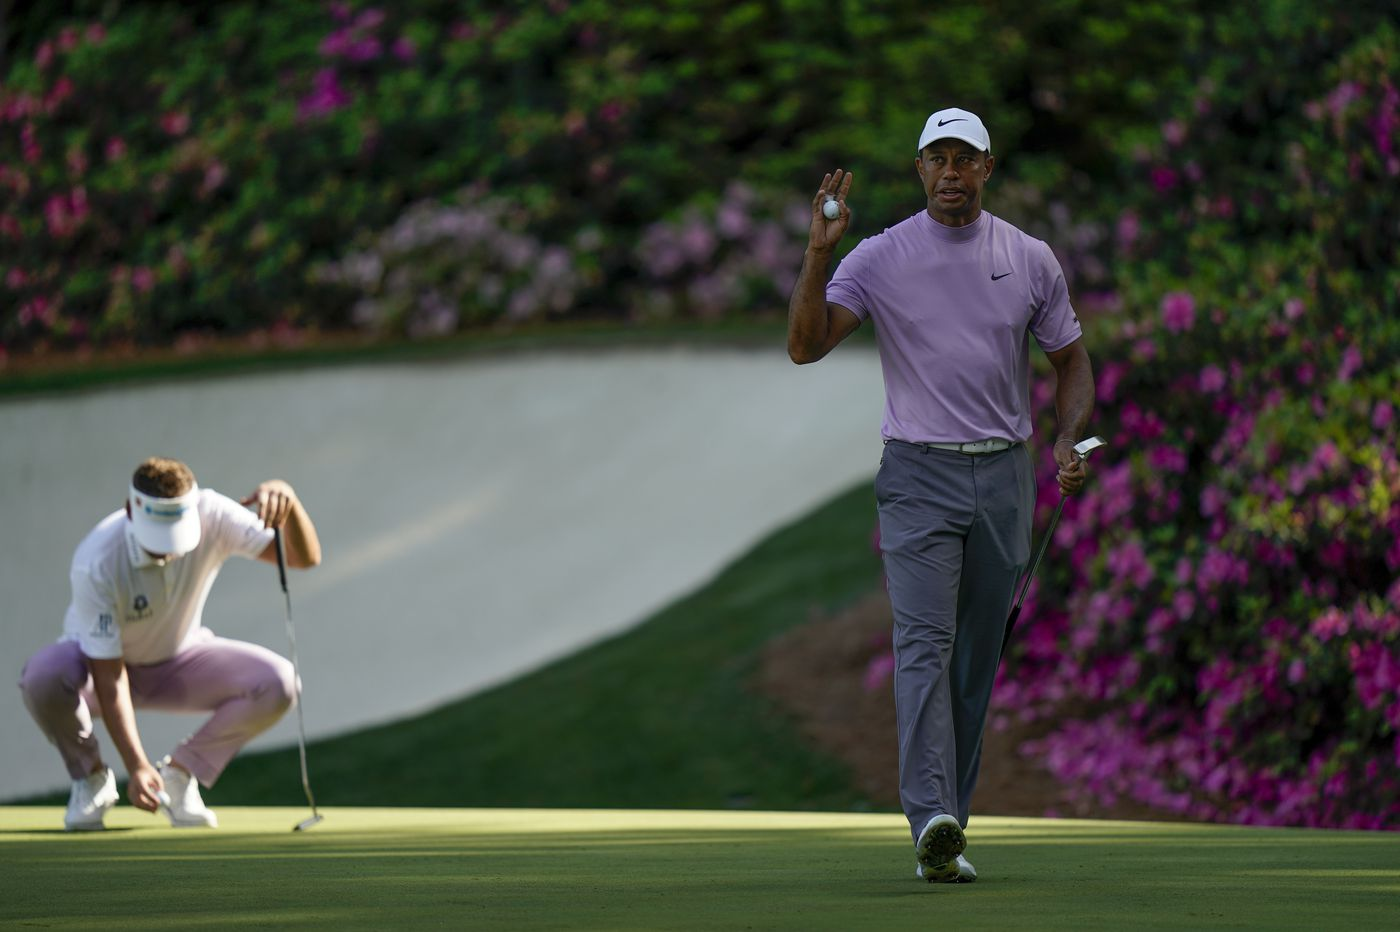 Tiger Woods captures fifth Masters golf title — CP NewsAlert